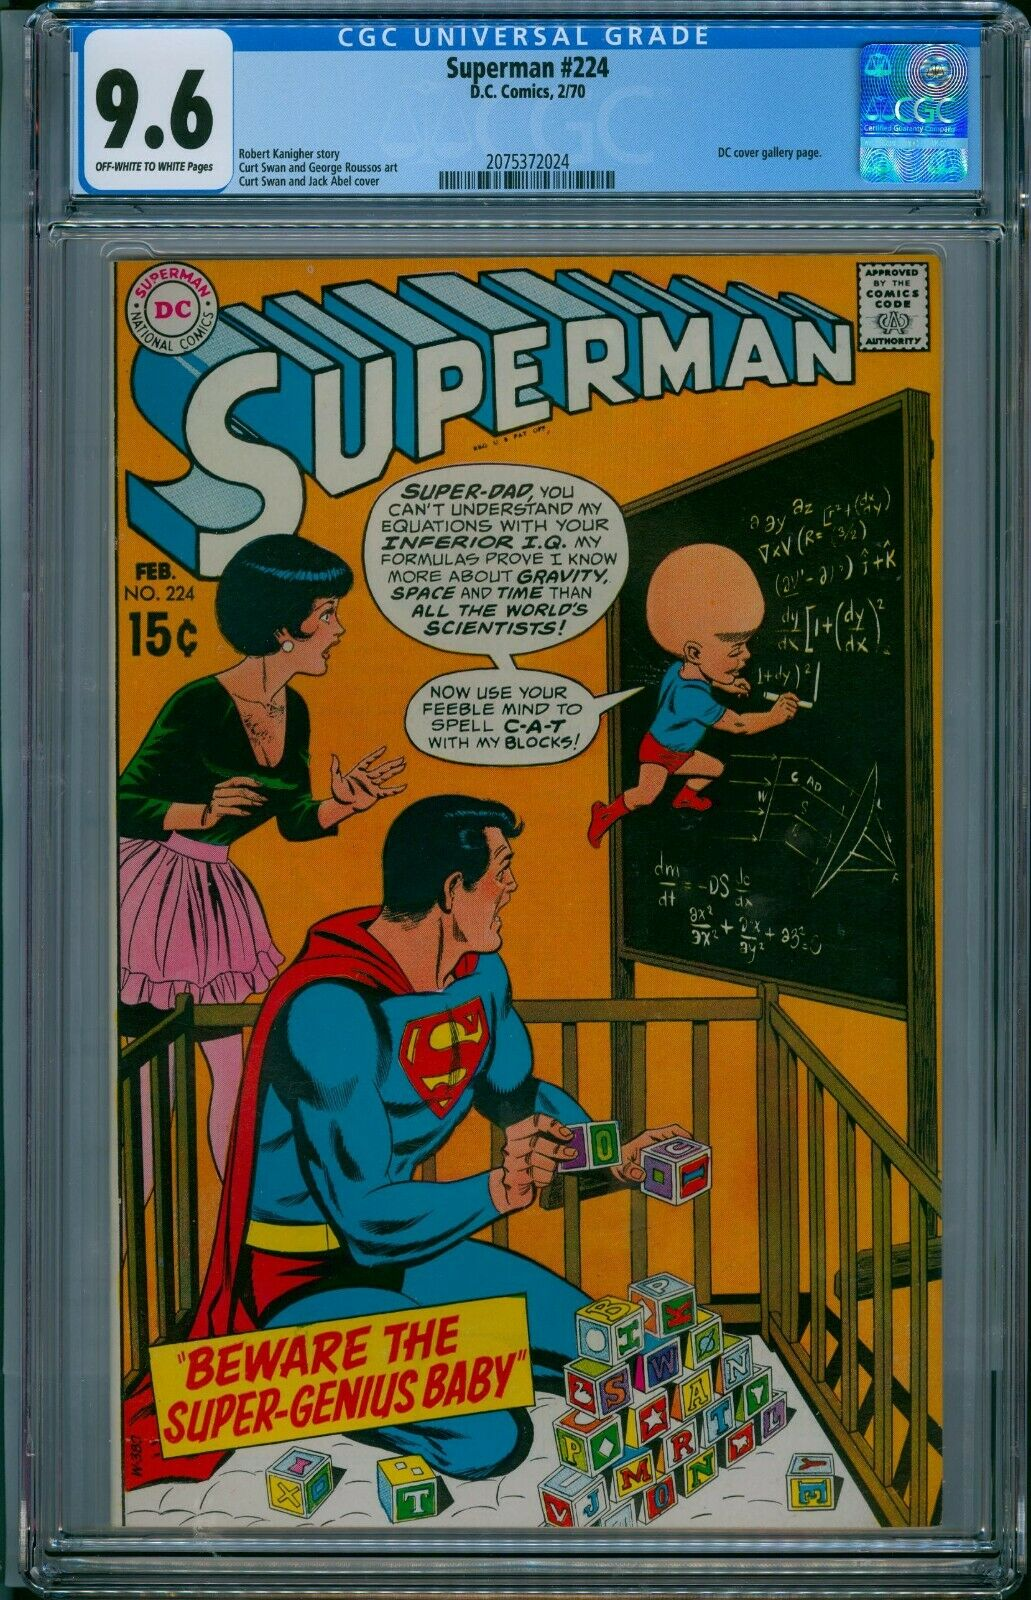 SUPERMAN #224 CGC 9.6 NM+ SUPER-GENIUS BABY 1970 DC CVR GALLERY CENTERED .99 NR